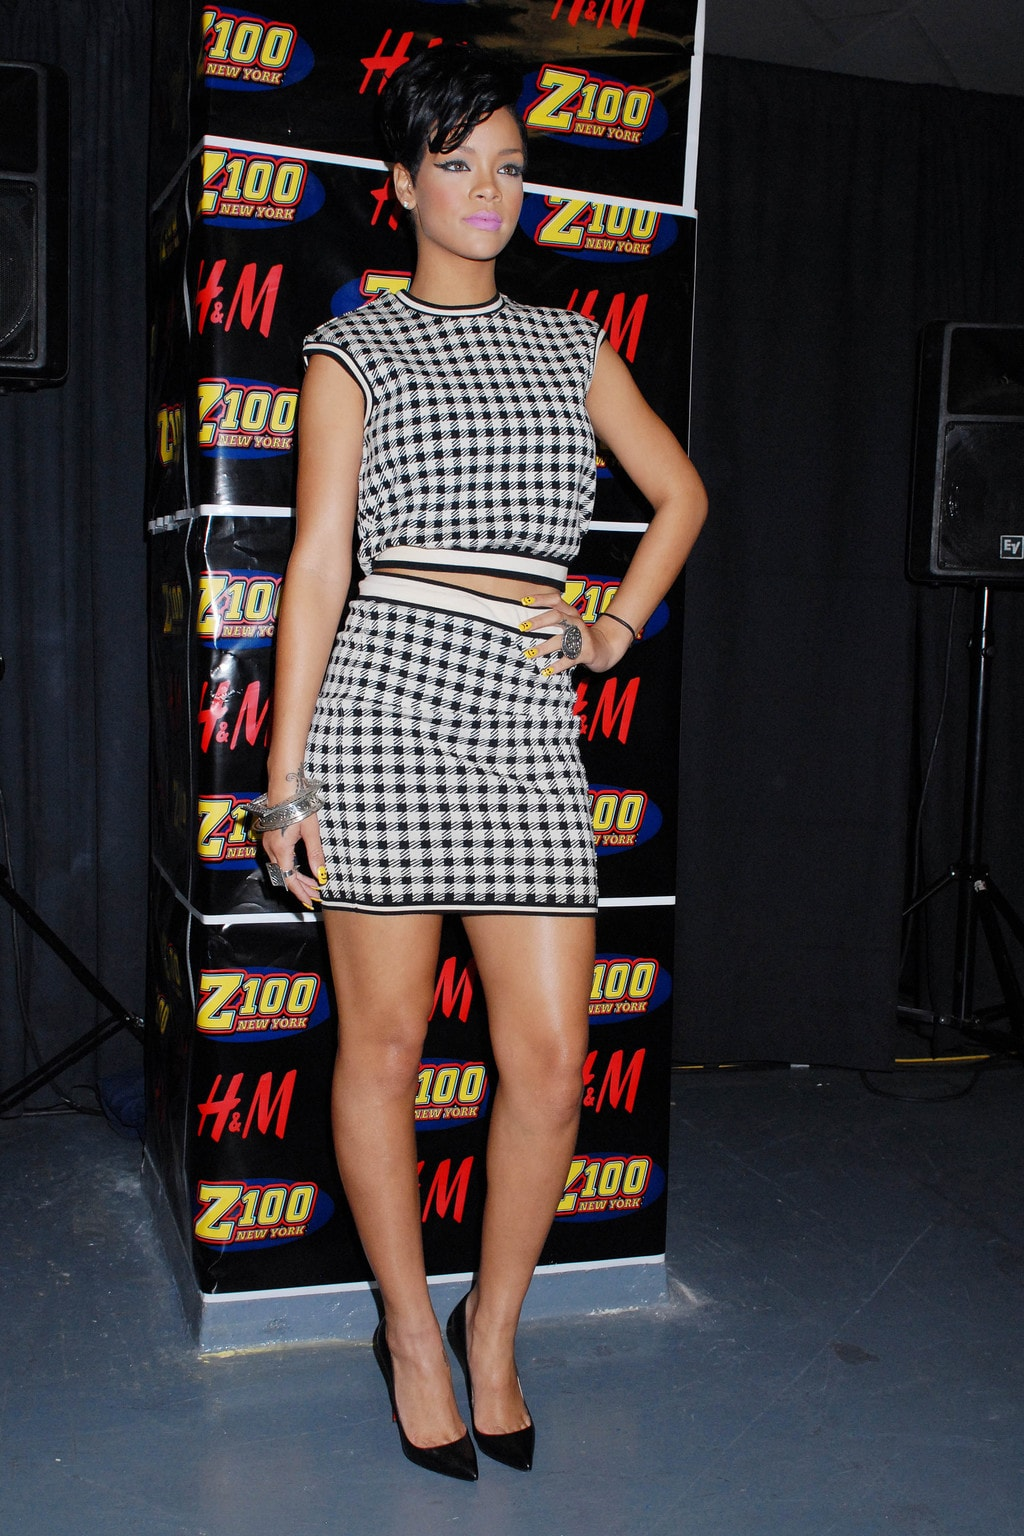 rihanna posing in a matching top and skirt checkered set